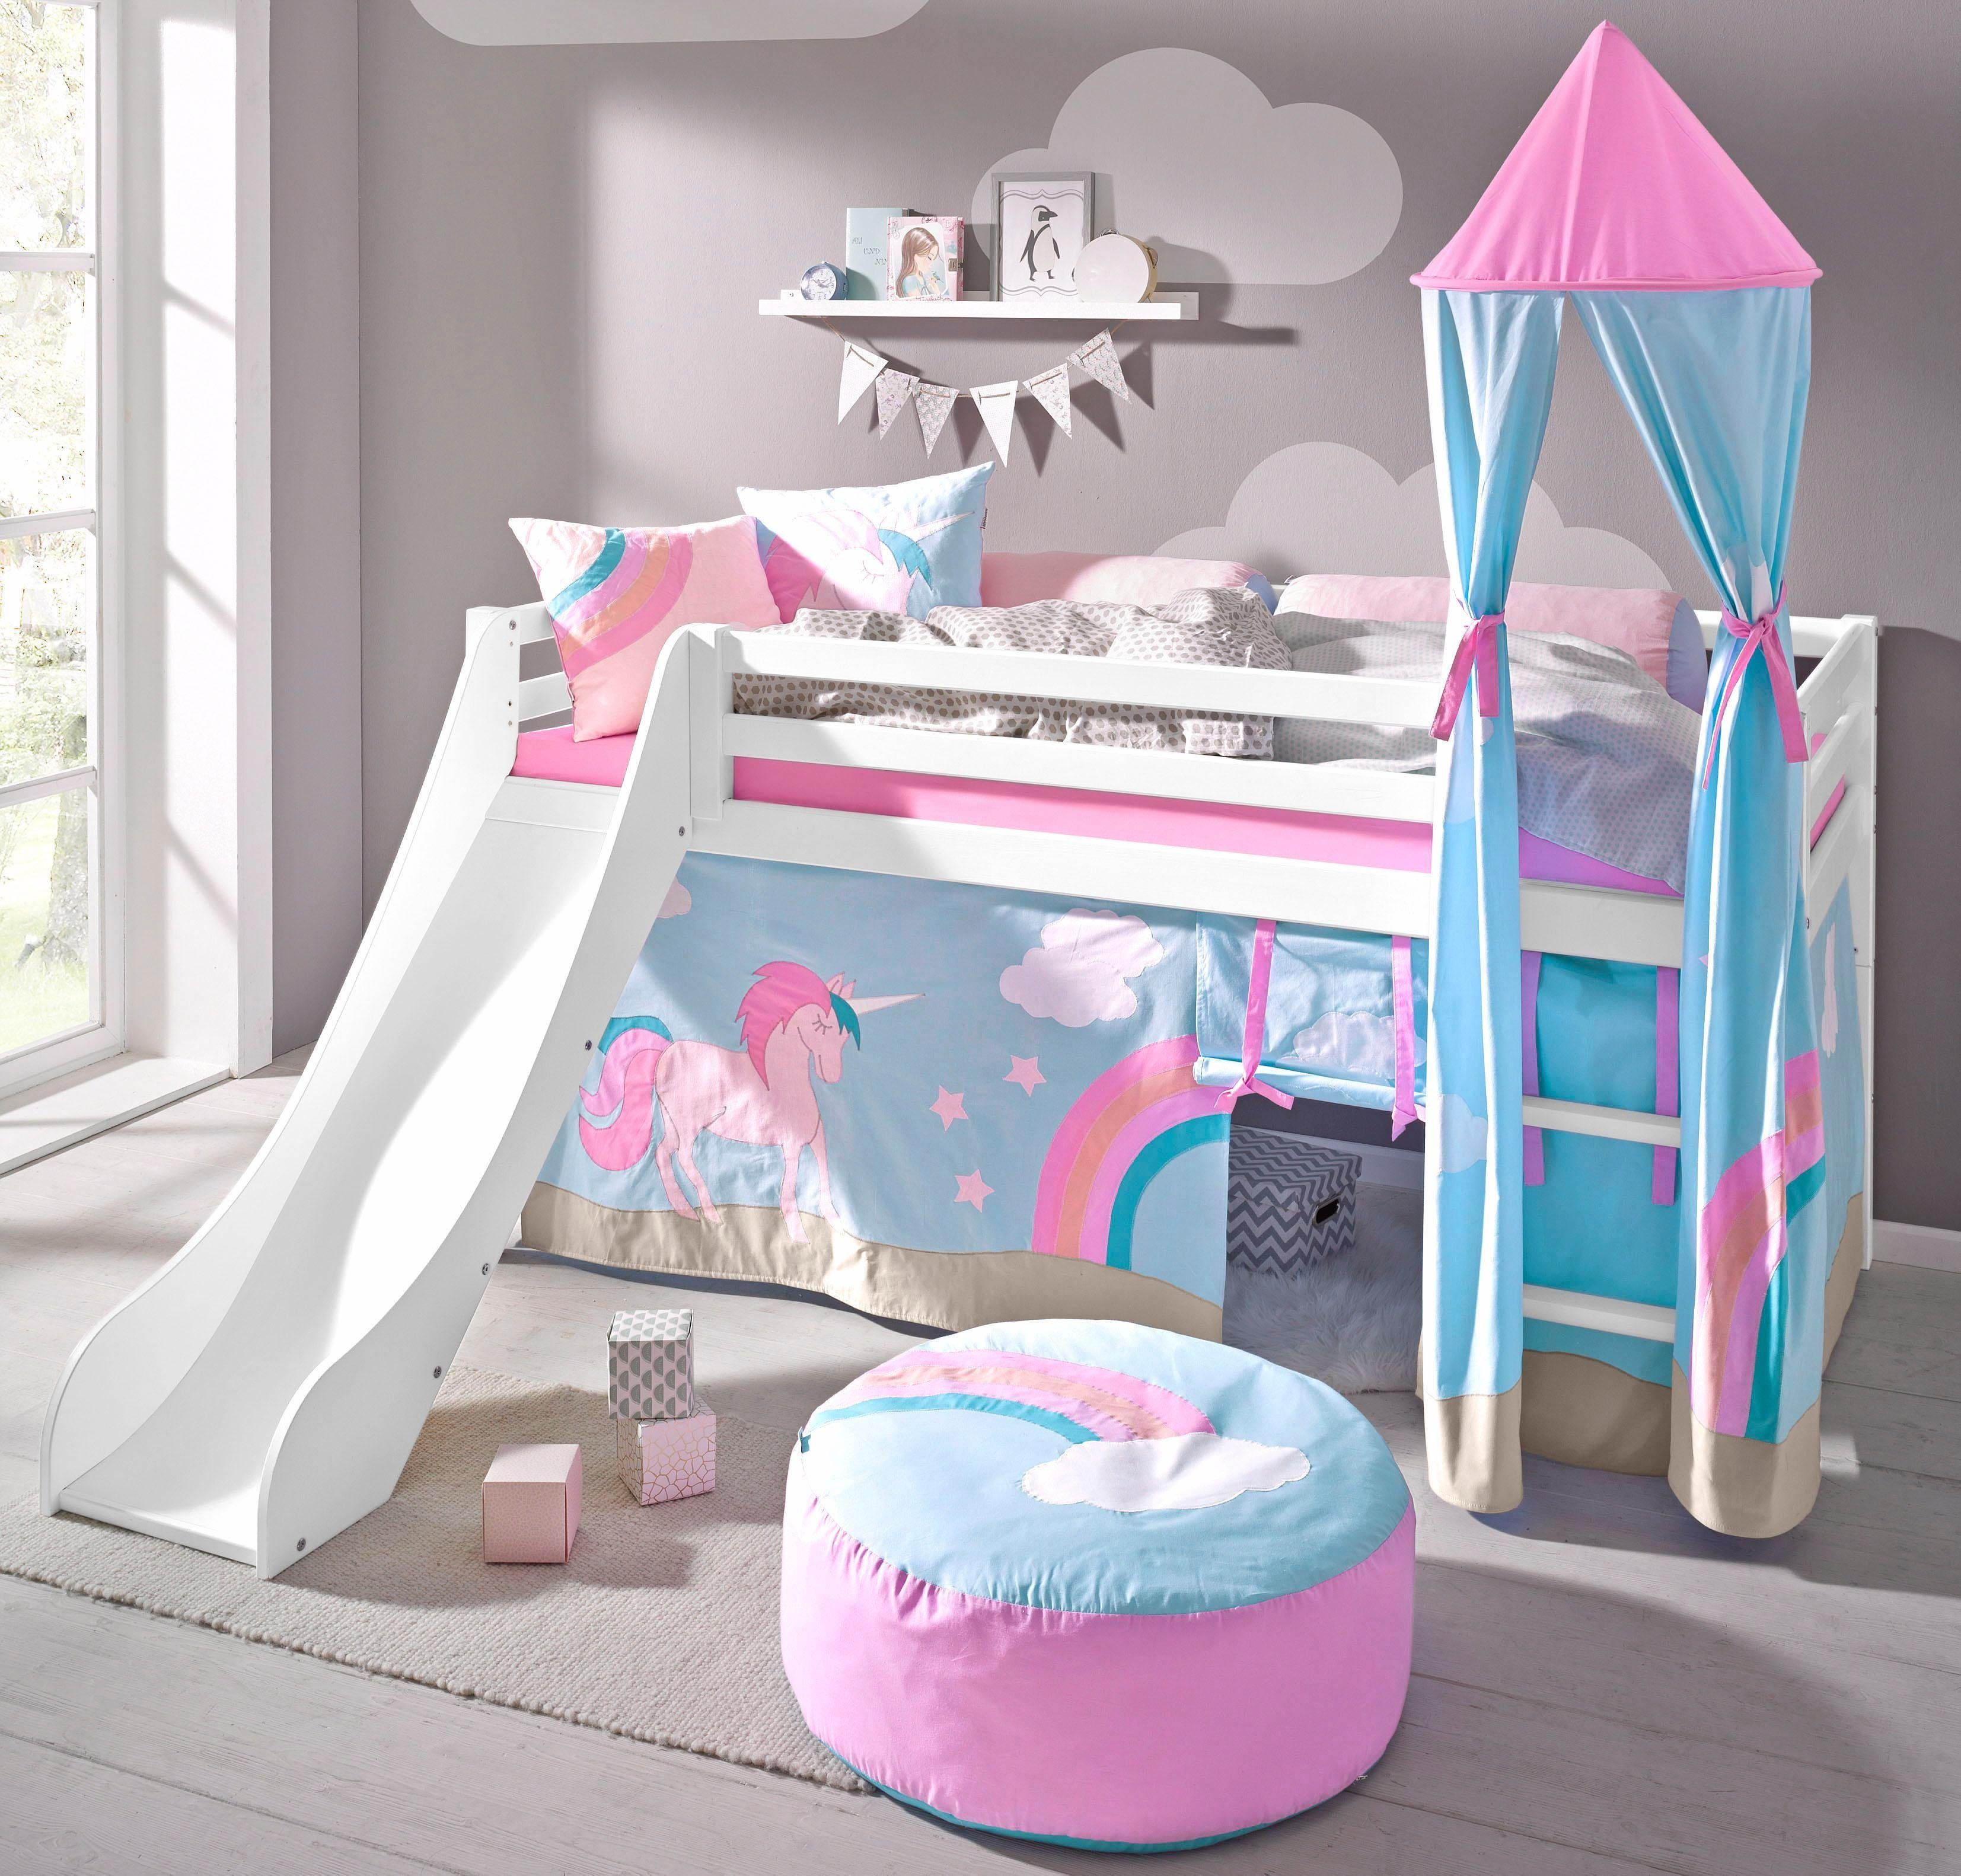 Unicorn bunk bed with slide Bunk bed with slide, Little